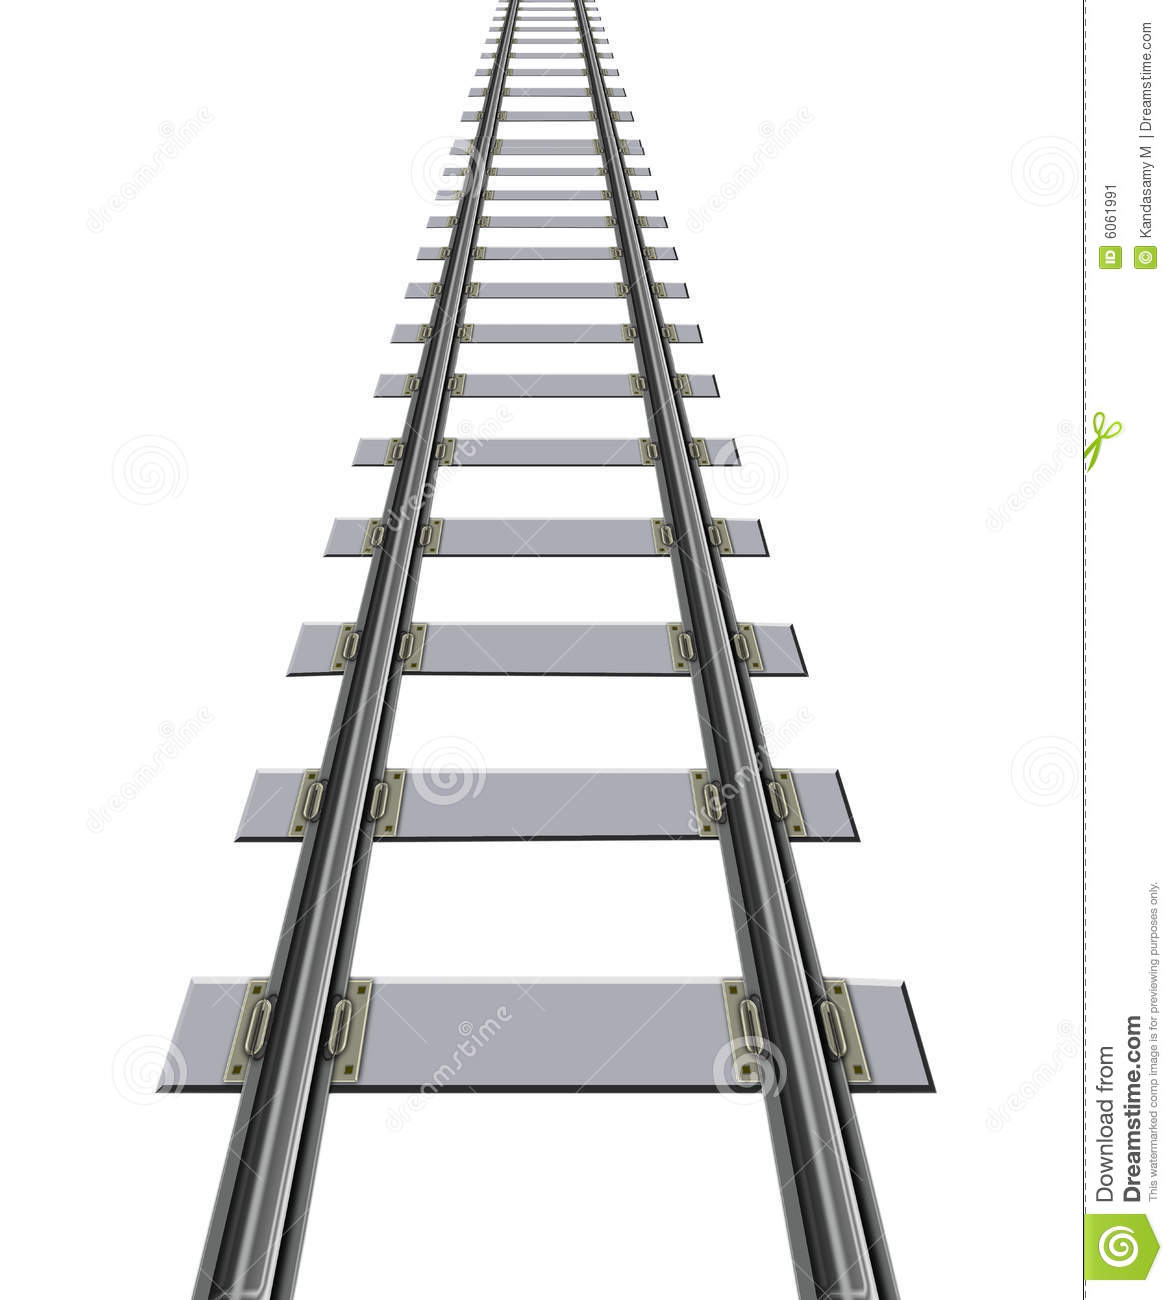 train tracks clipart clipart panda free clipart images train track clipart border train track clipart no background